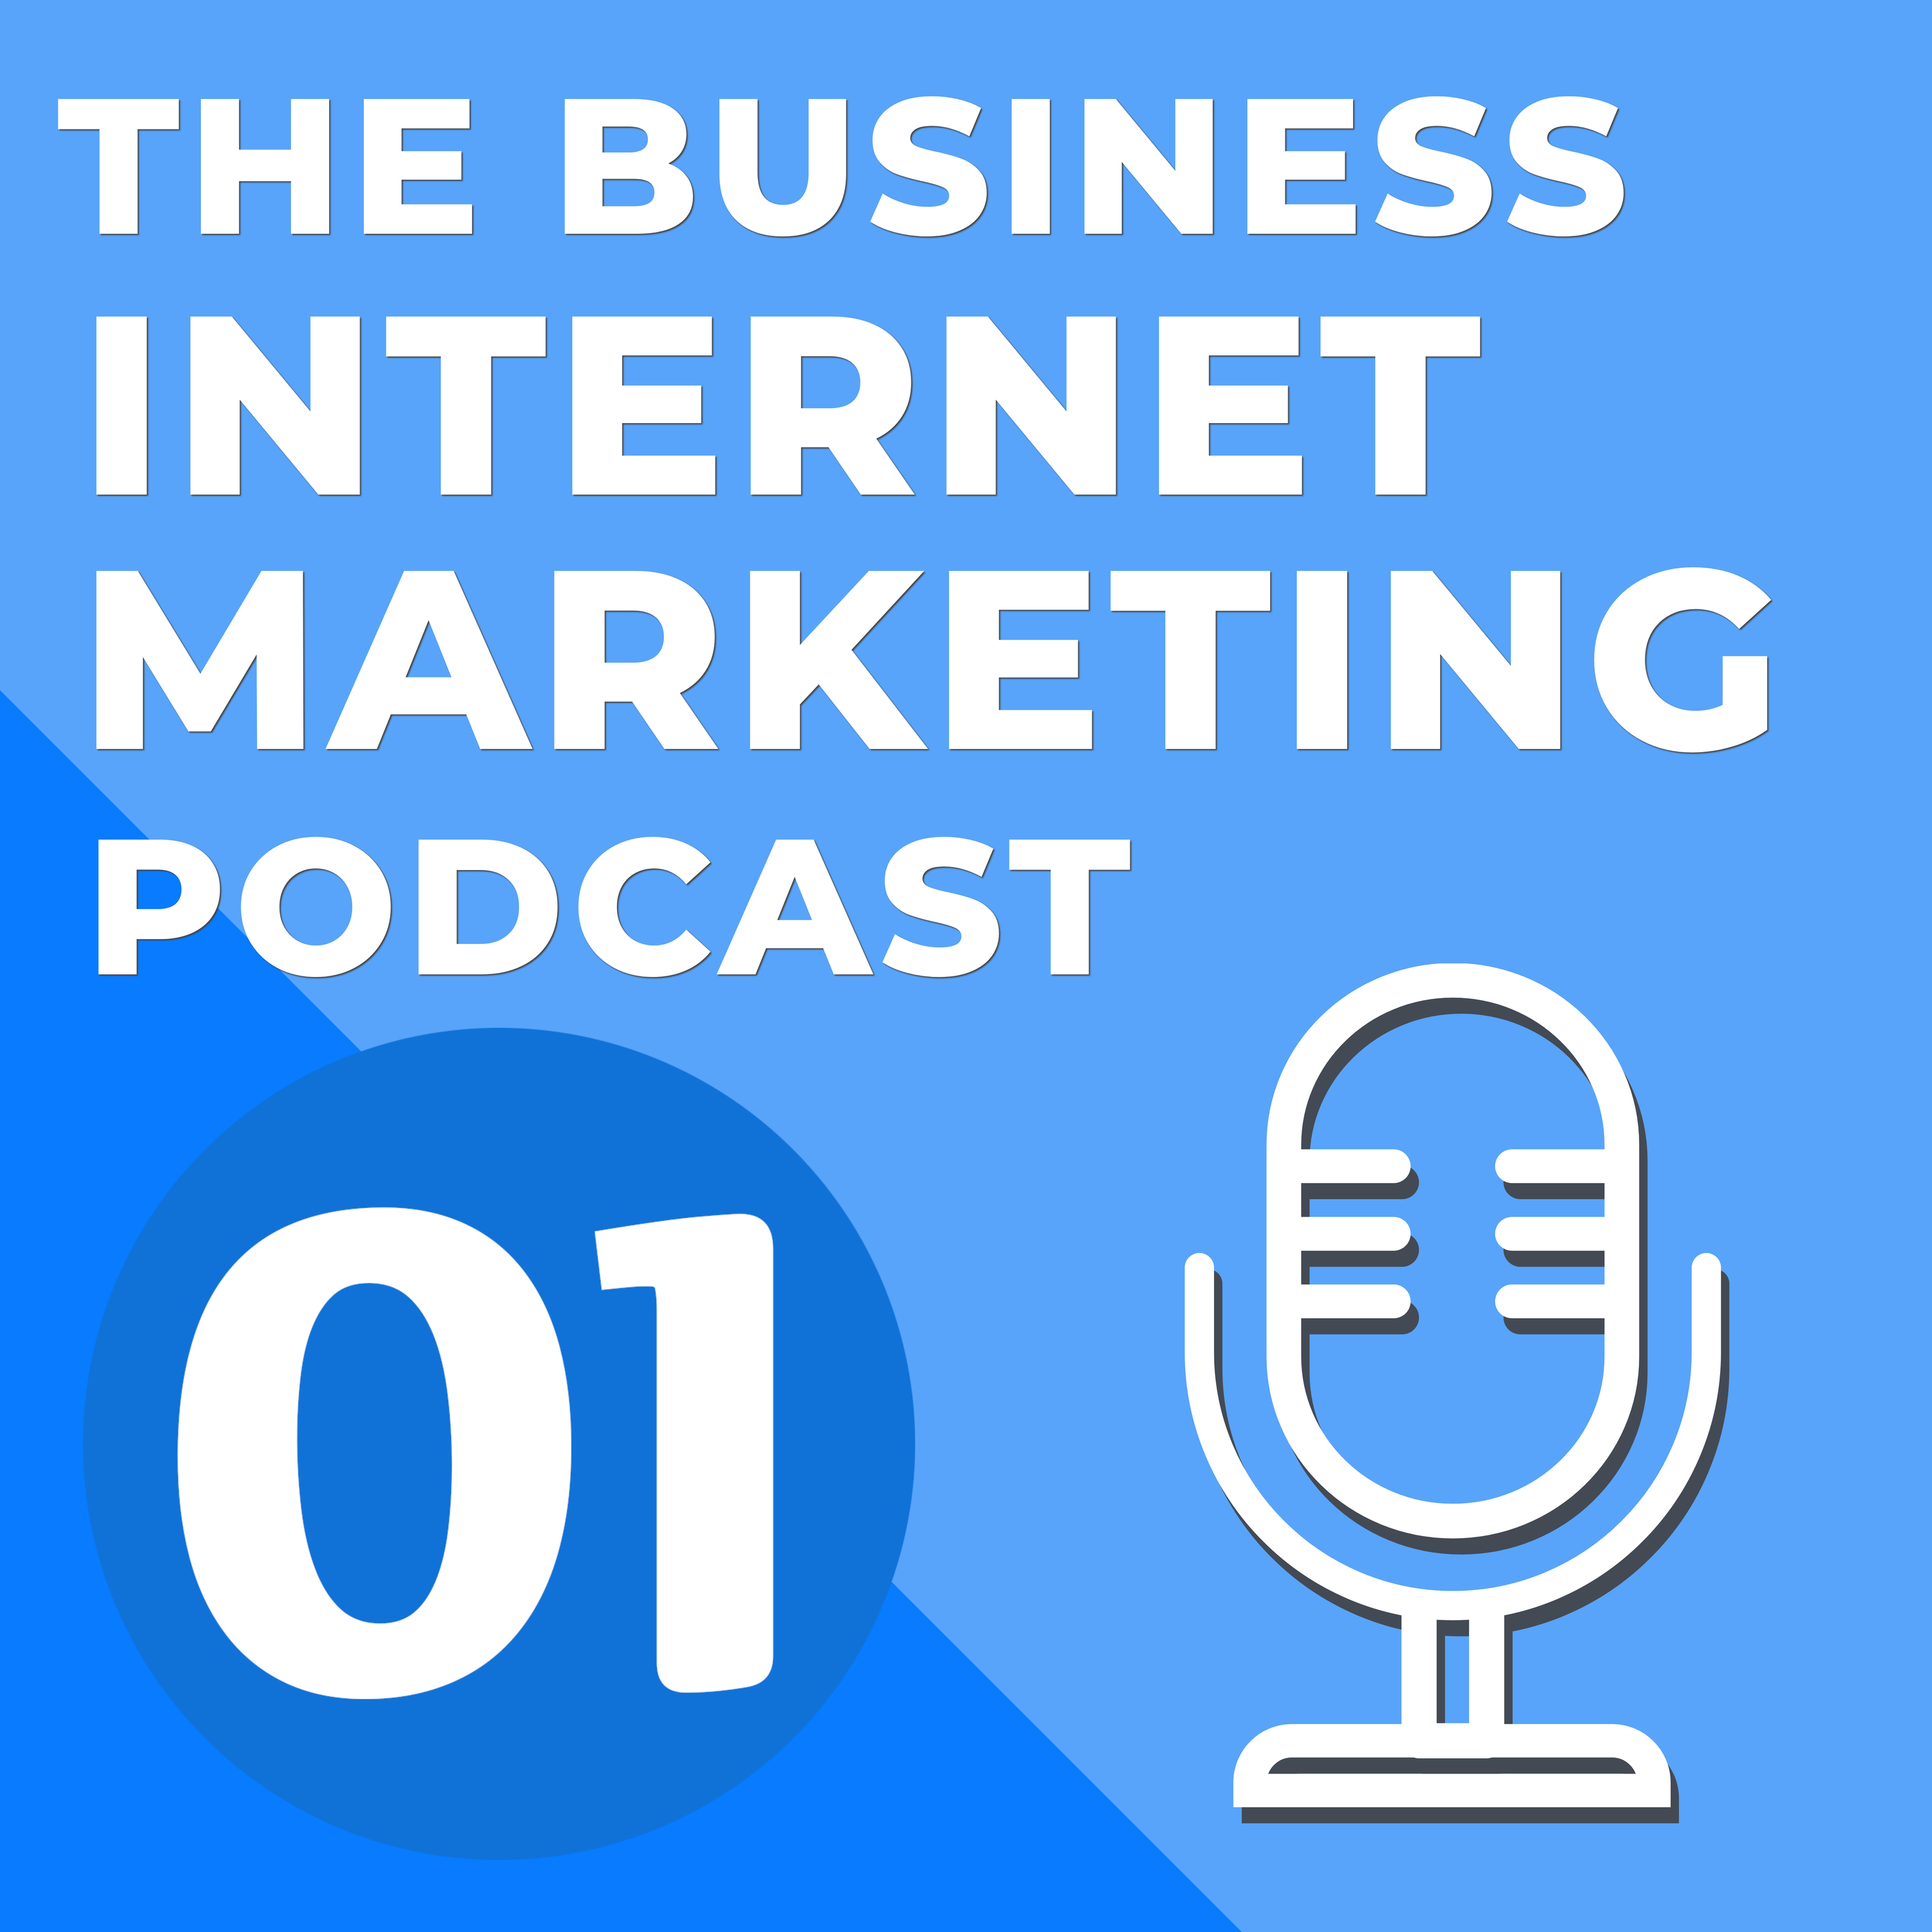 The Business Internet Marketing Podcast